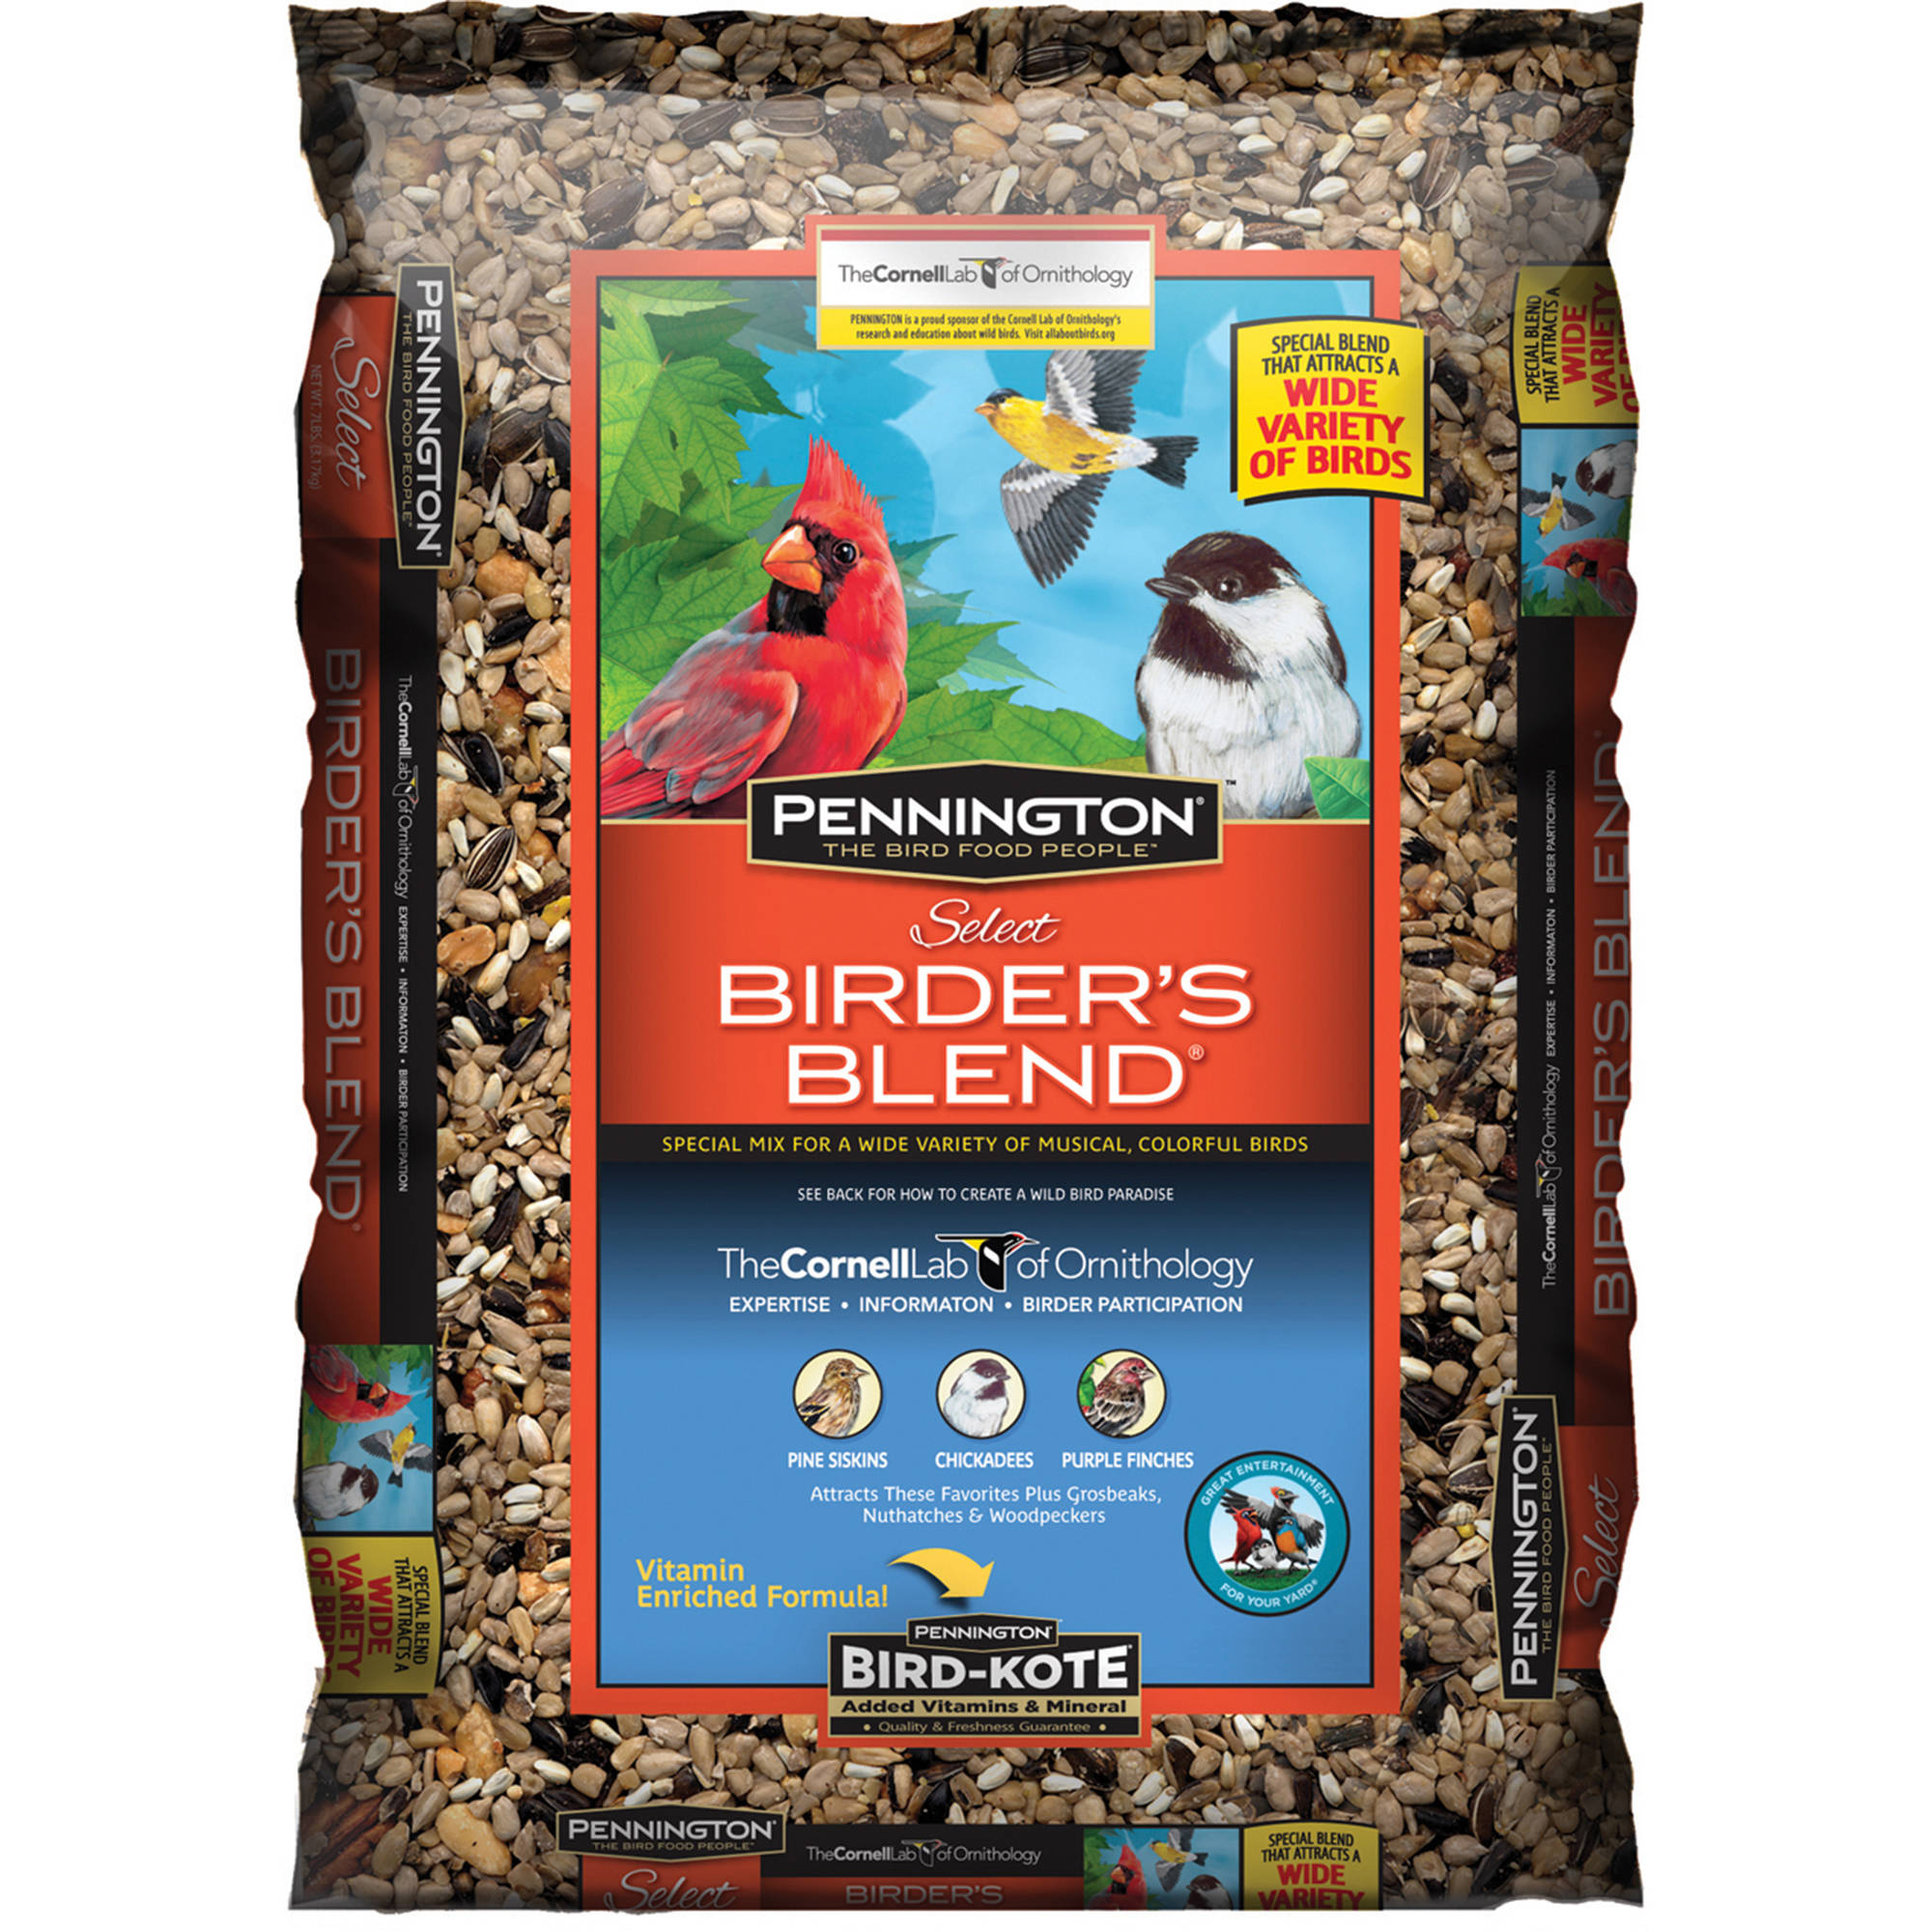 Pennington Select Birder's Blend Wild Bird Feed, 14 lbs